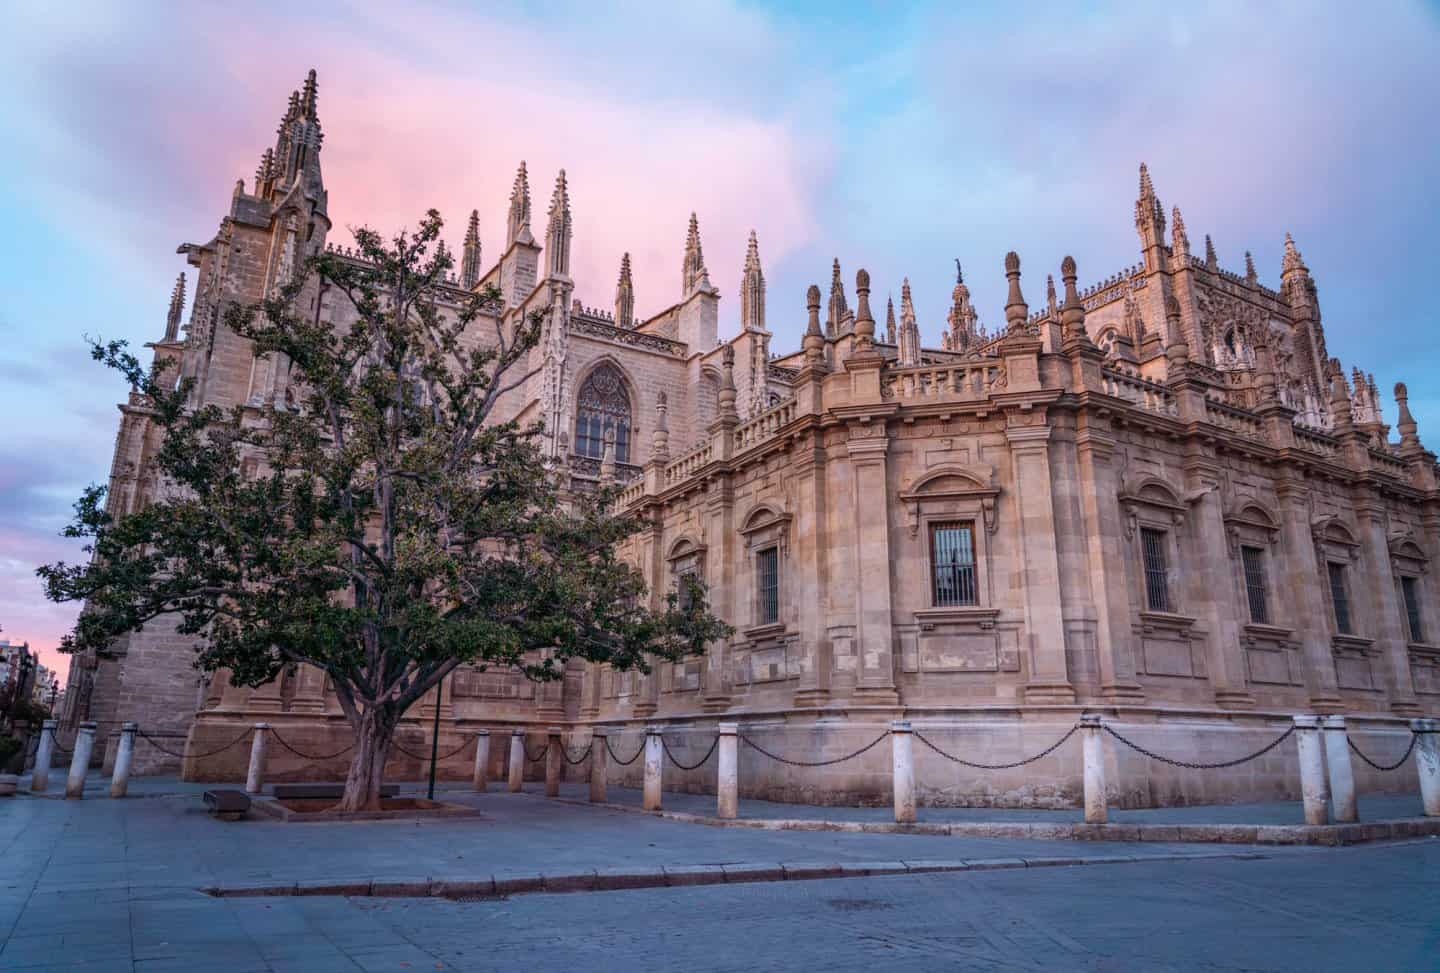 Catedral de Sevilla at sunset